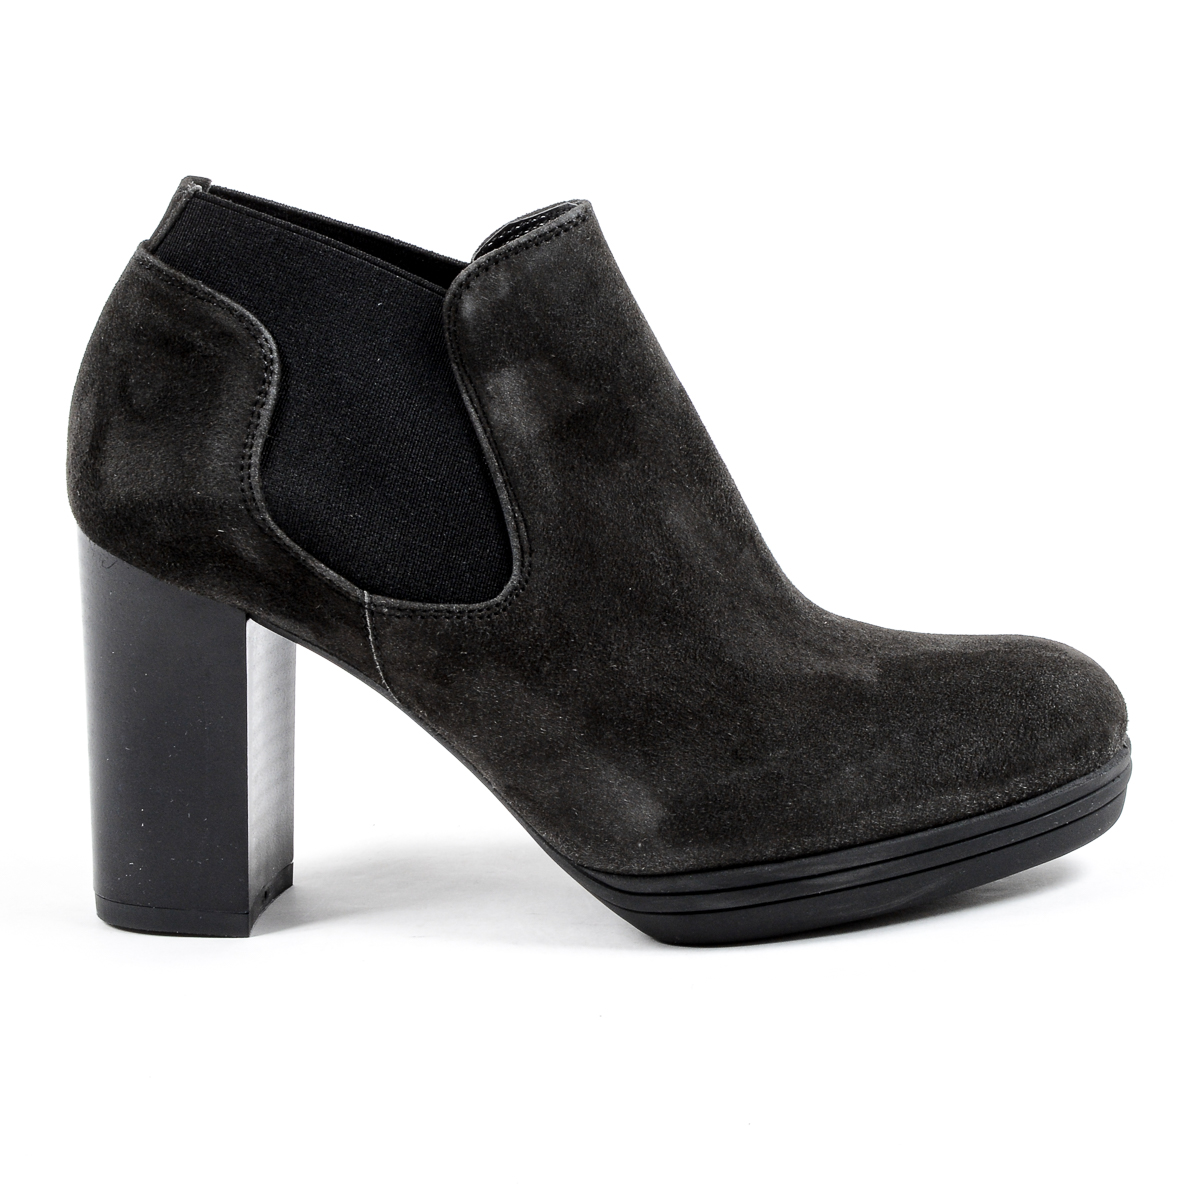 Primary image for V 1969 Italia Womens Heeled Ankle Boot Dark Grey GRACY